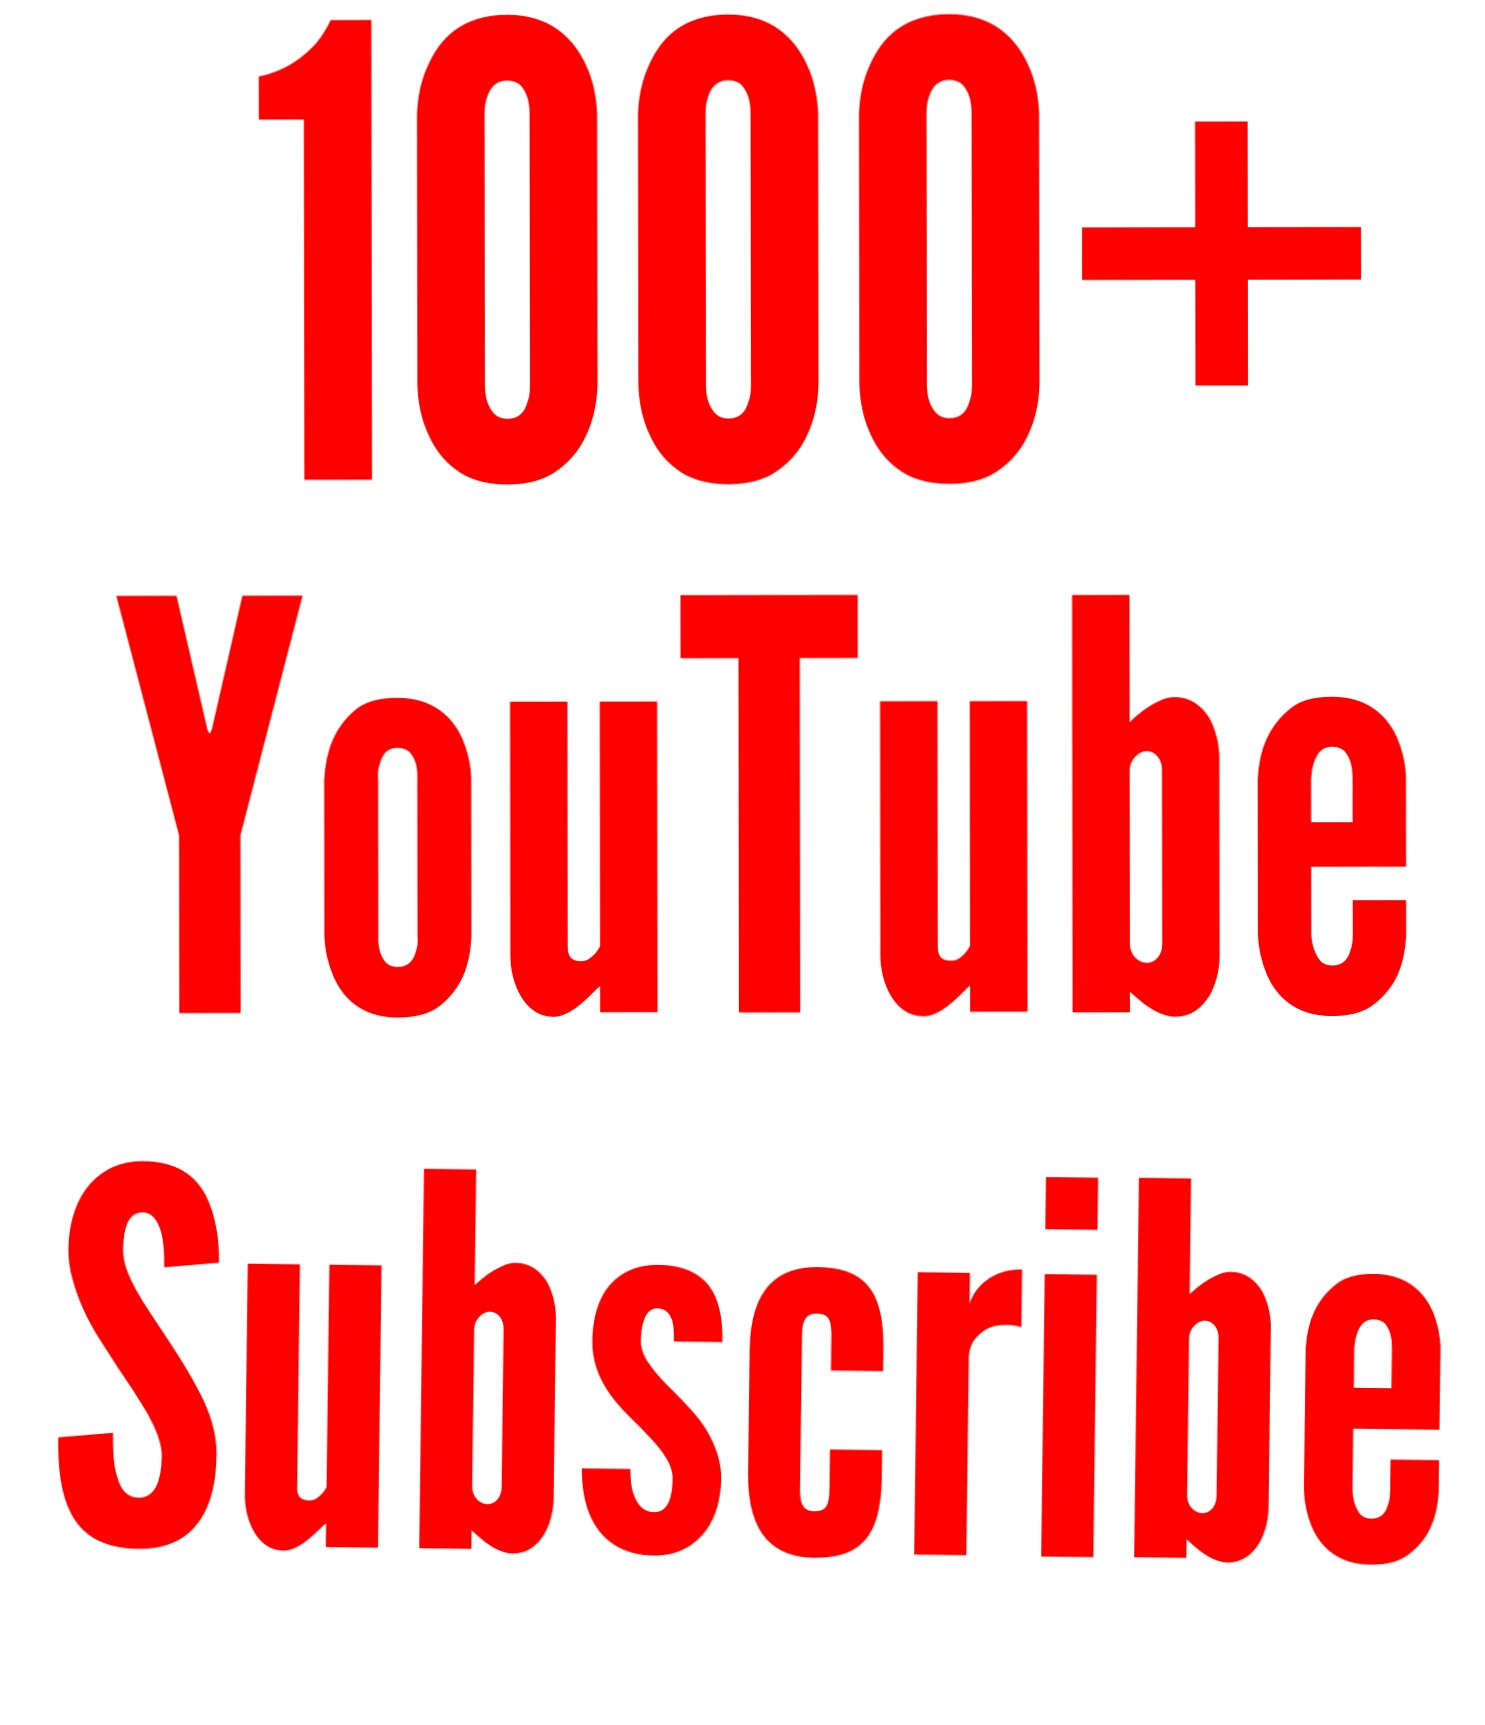 Active 1000+ You tube Subs cribe Super fast delivery only for